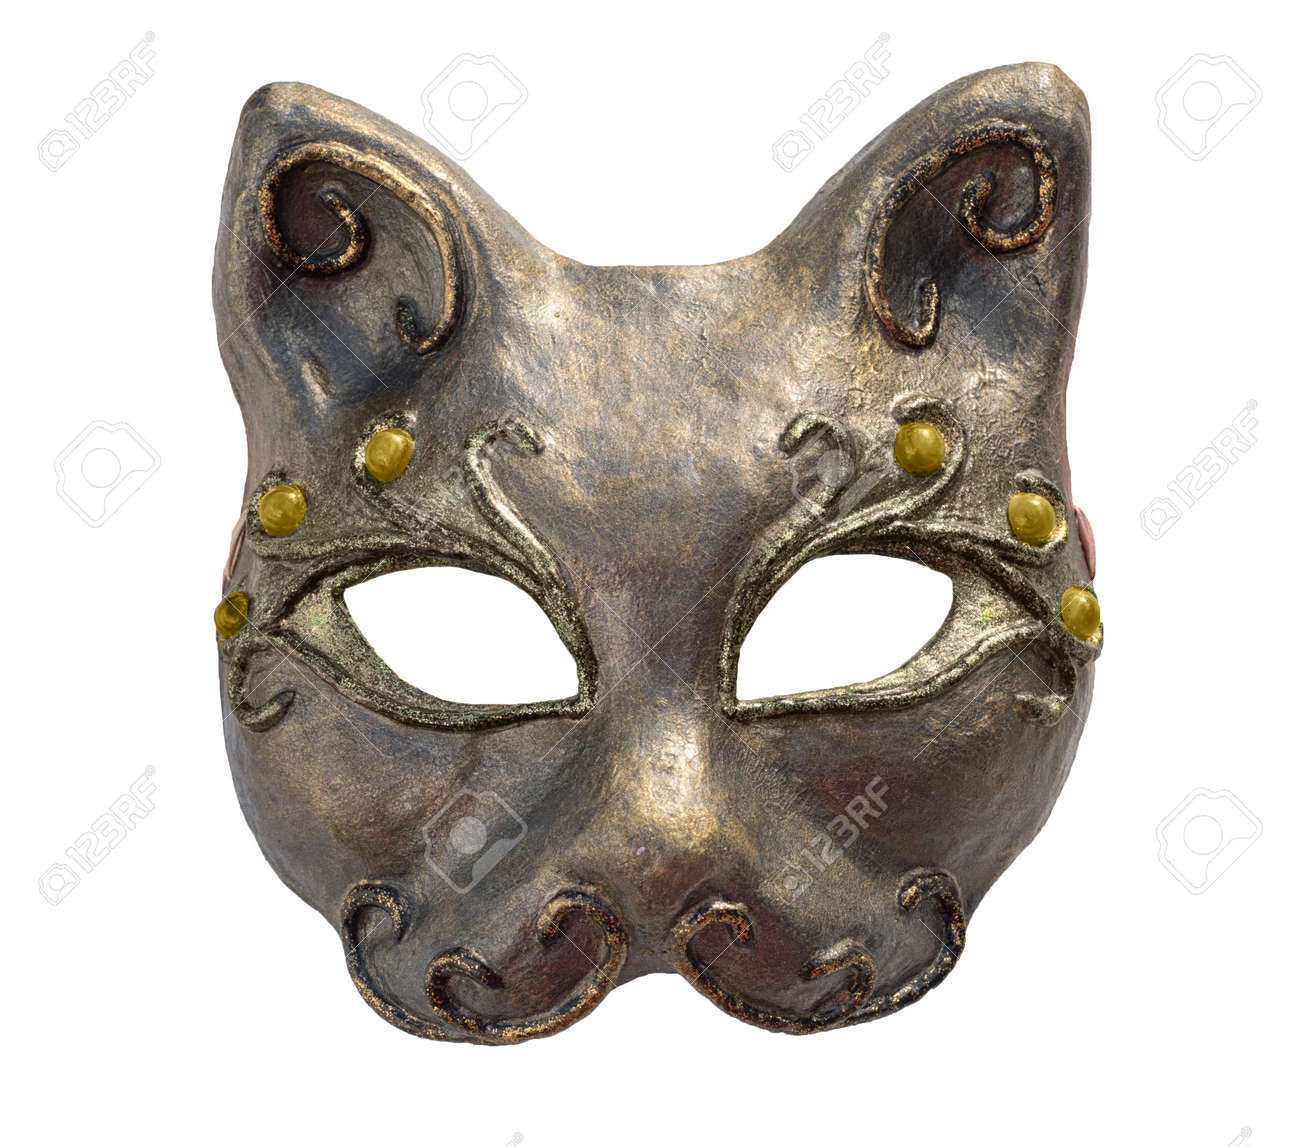 Papier Mache pour interior and carnaval mask of cat, isolated on white. papier-mache